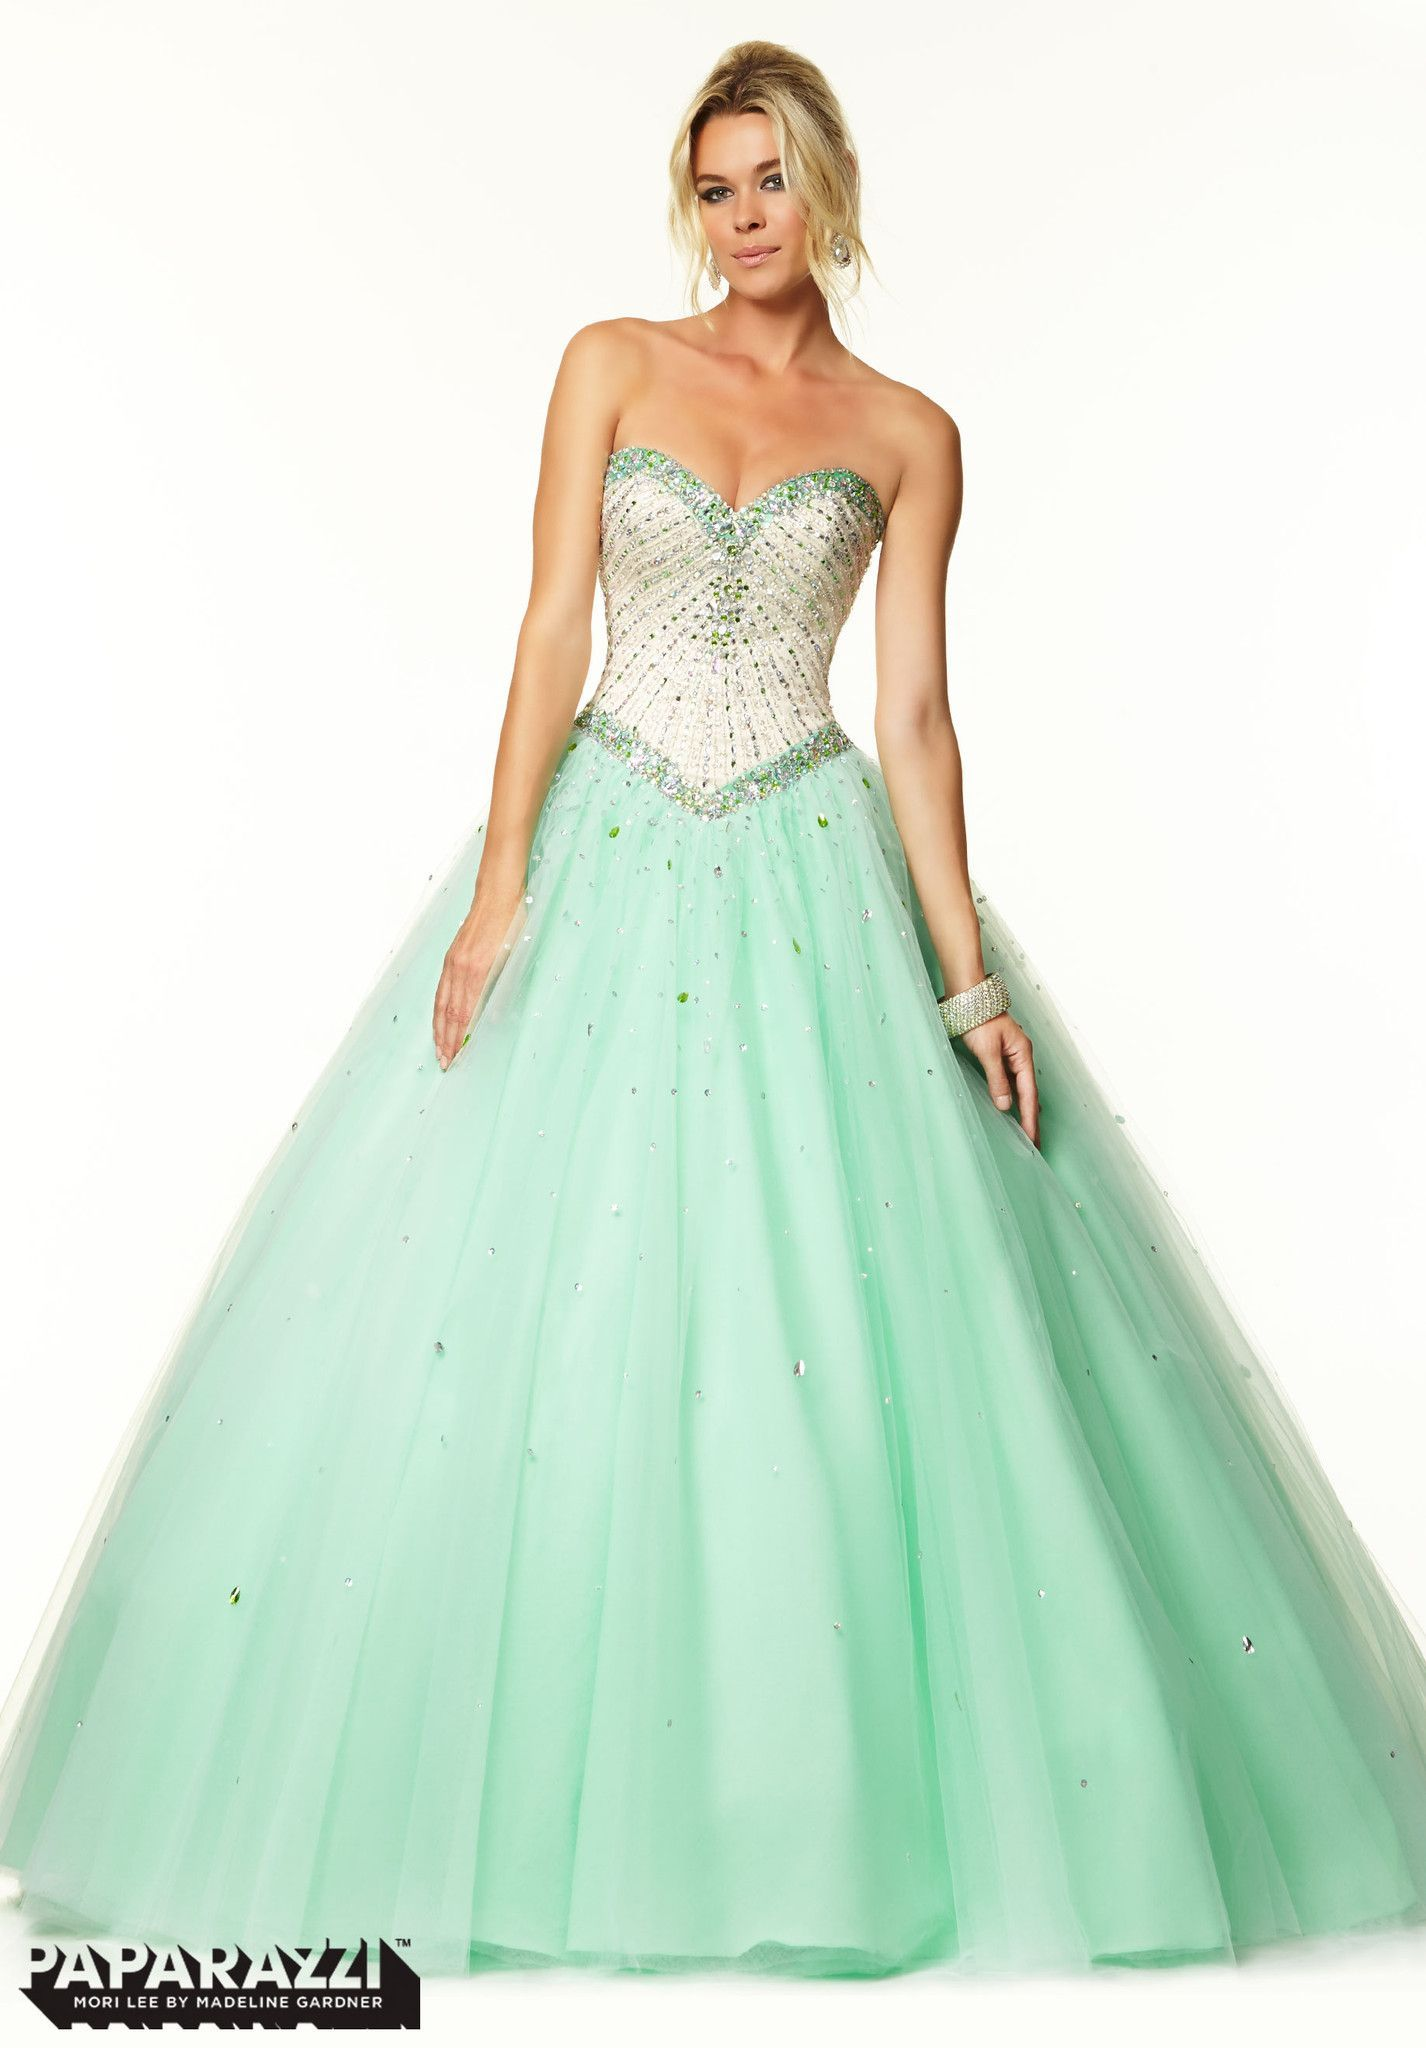 Paparazzi by Mori Lee prom dress 97017, Beige/Mint size 16, Ball ...